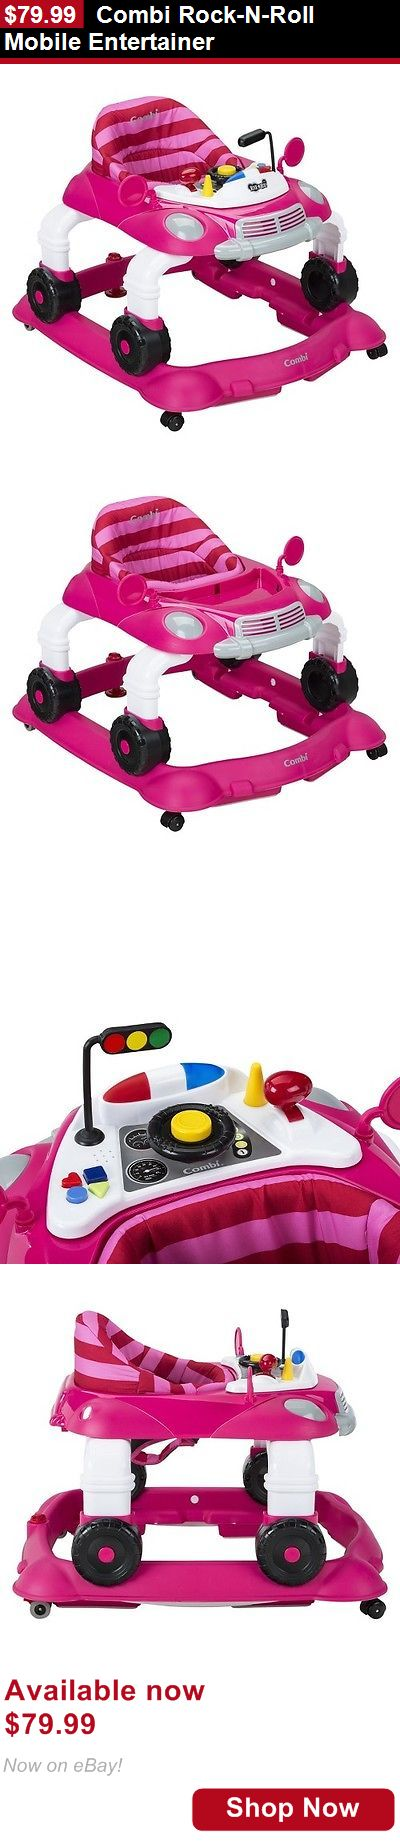 Baby walkers: Combi Rock-N-Roll Mobile Entertainer BUY IT NOW ONLY: $79.99